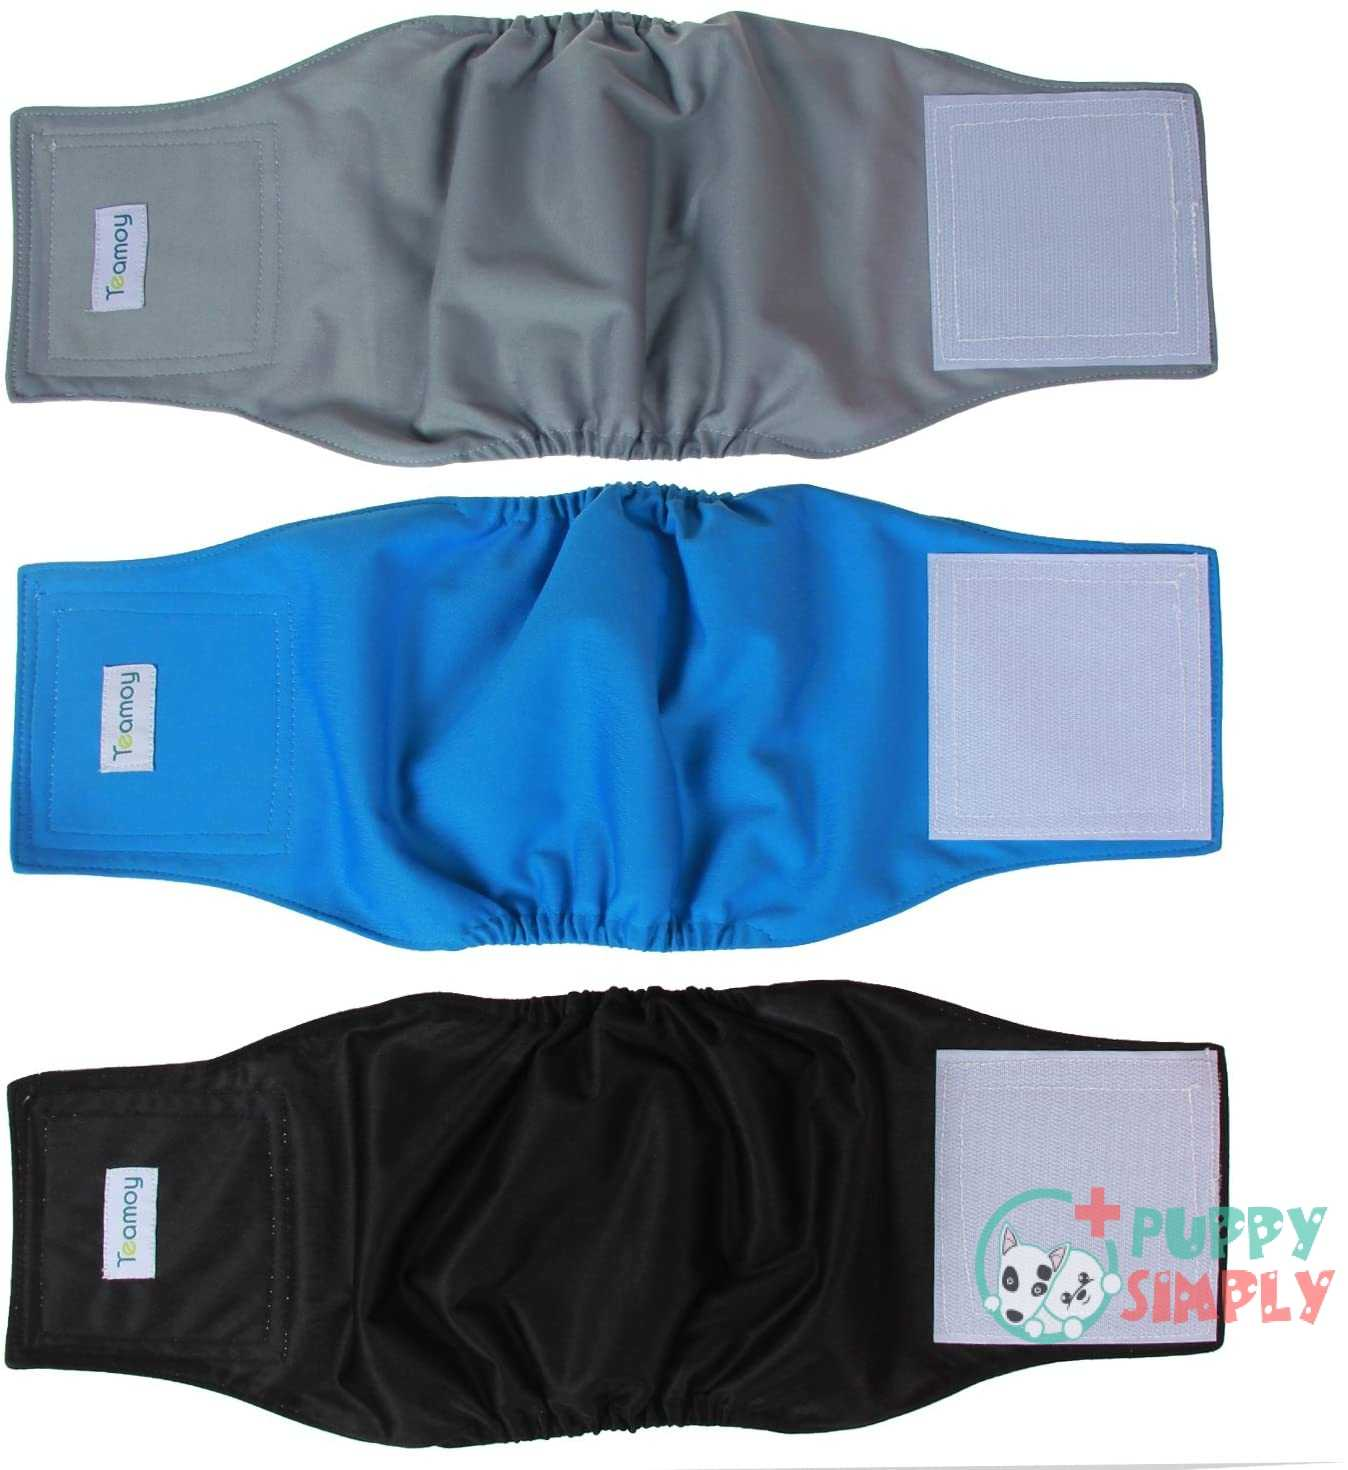 Teamoy Reusable Wrap Diapers for